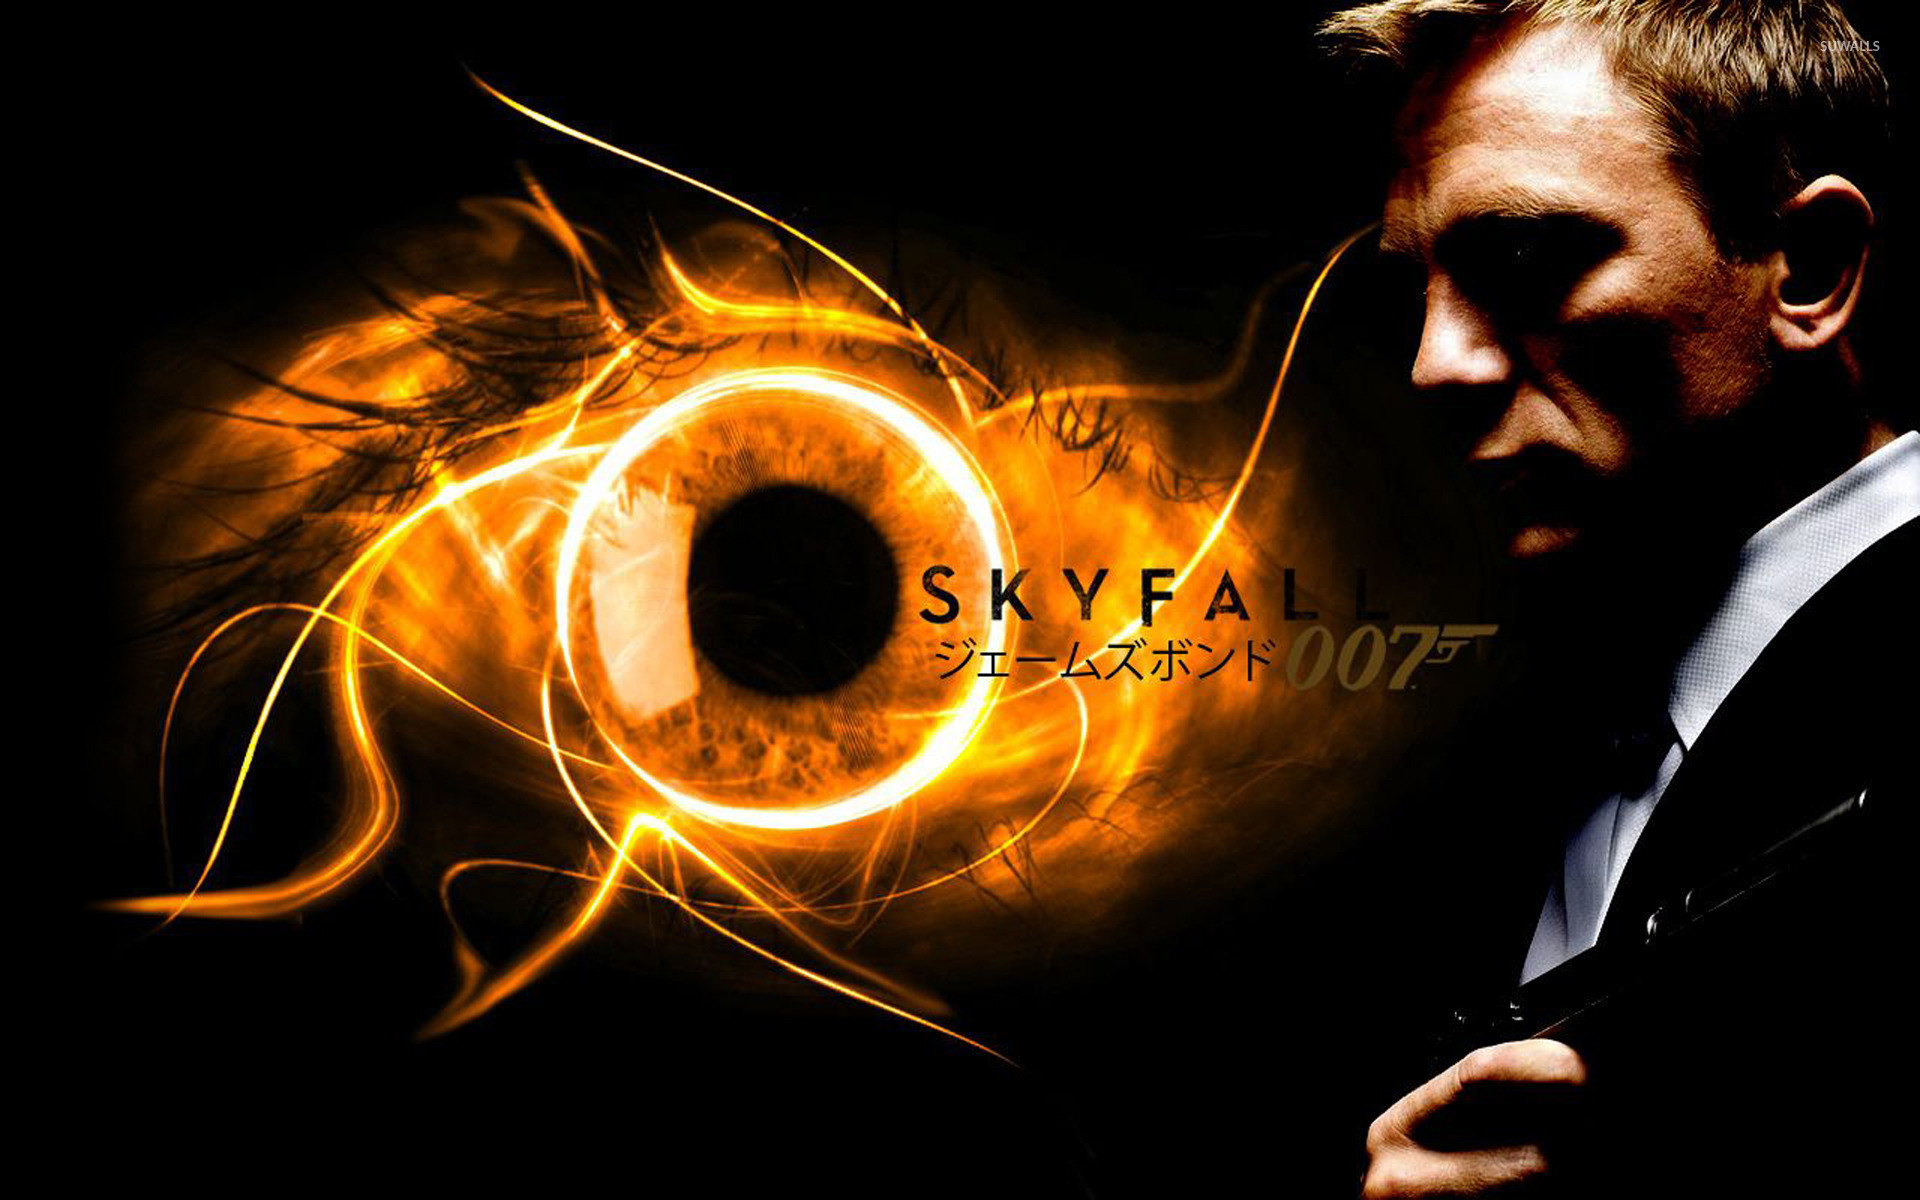 james bond - skyfall [5] wallpaper - movie wallpapers - #14230